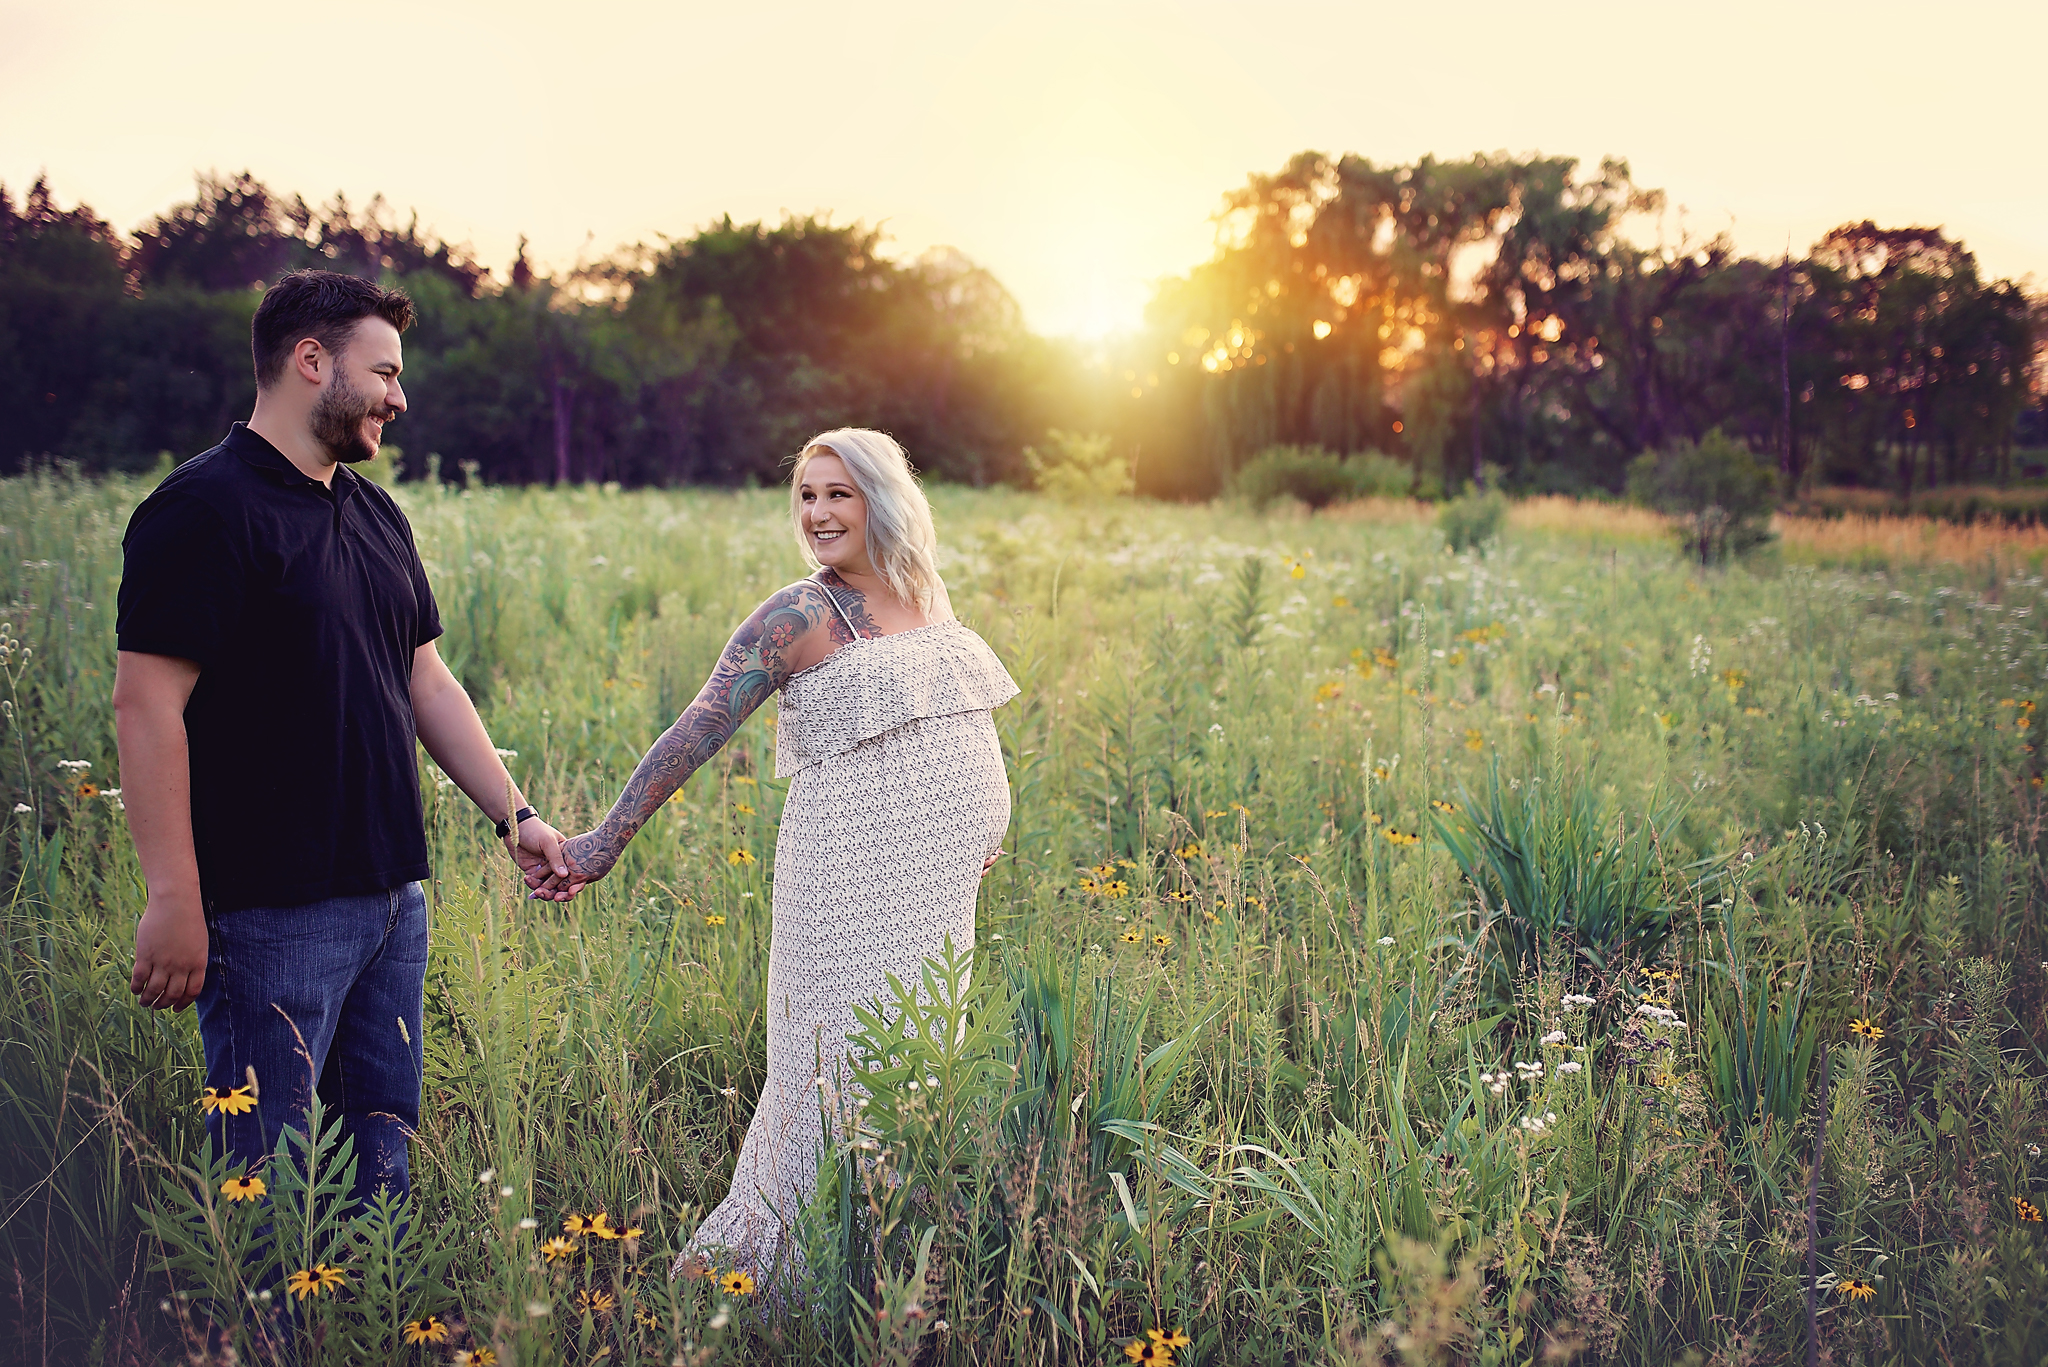 - My husband and I did a maternity shoot and we absolutely love the photos! Nicole was amazing at capturing moments and emotions that we can hold on to forever! Can't wait to do our newborn shoot with her in August!! Highly recommend!! -Keera L.